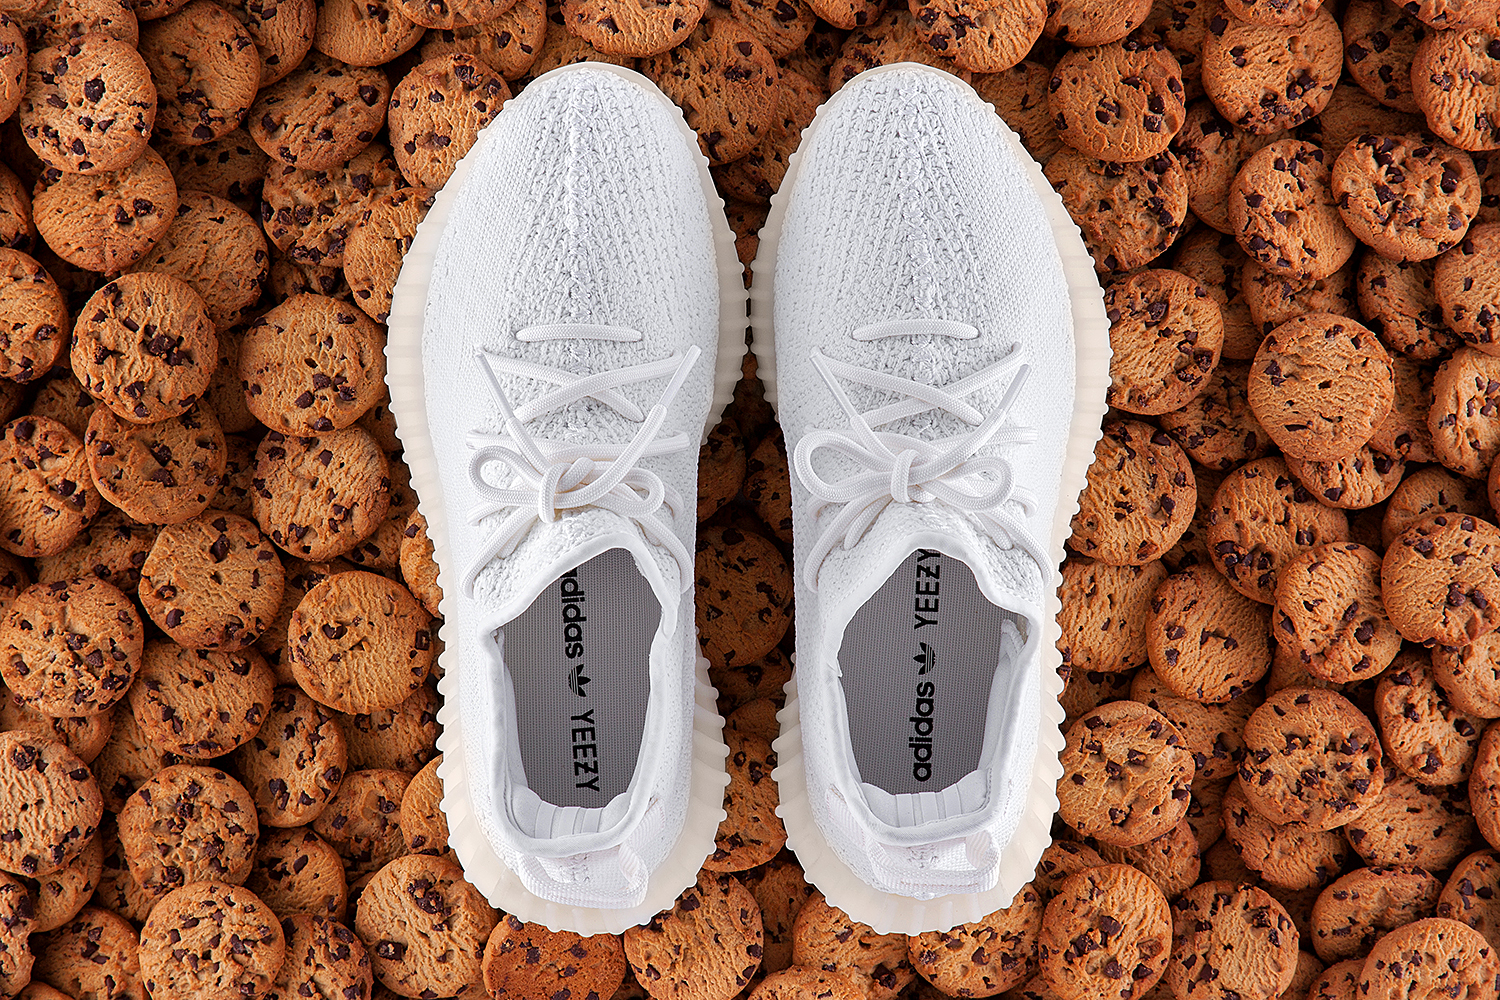 Yeezy 350 Cream Wht_Photography by Kev Foster for Philip Browne.jpg